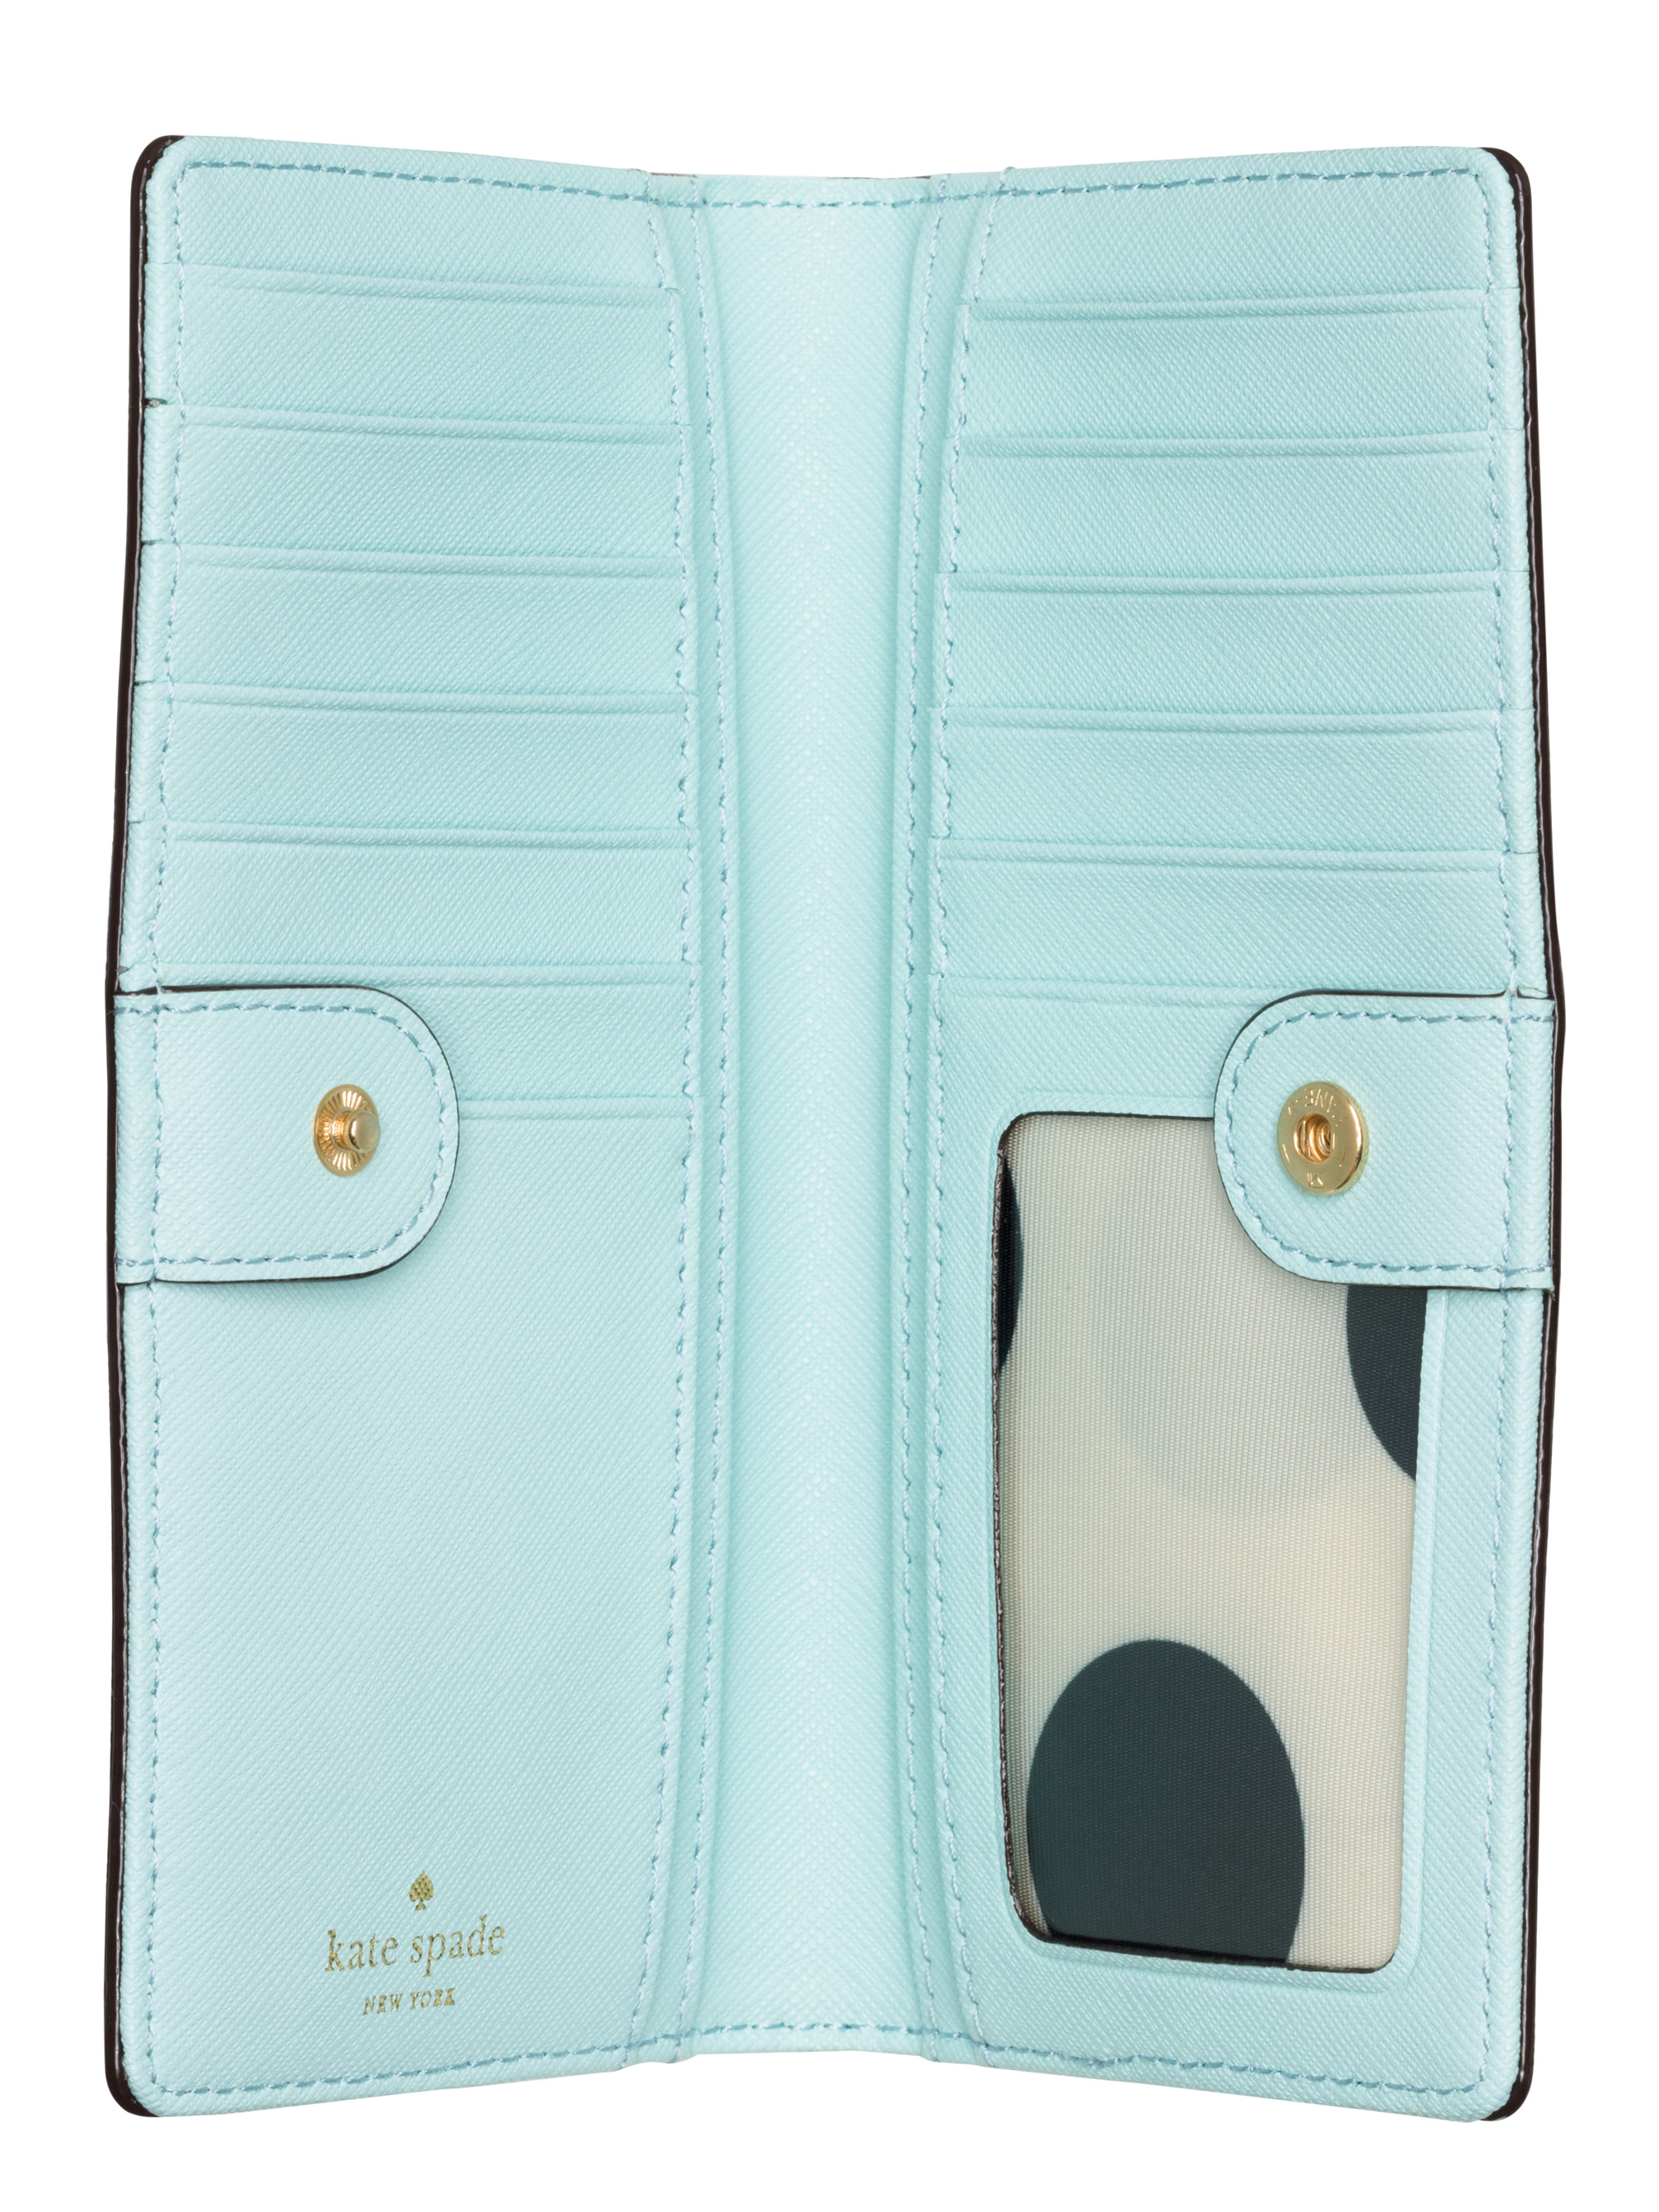 166befe86ebf7 Kate Spade Stacy Wallet Blue - Image Of Wallet